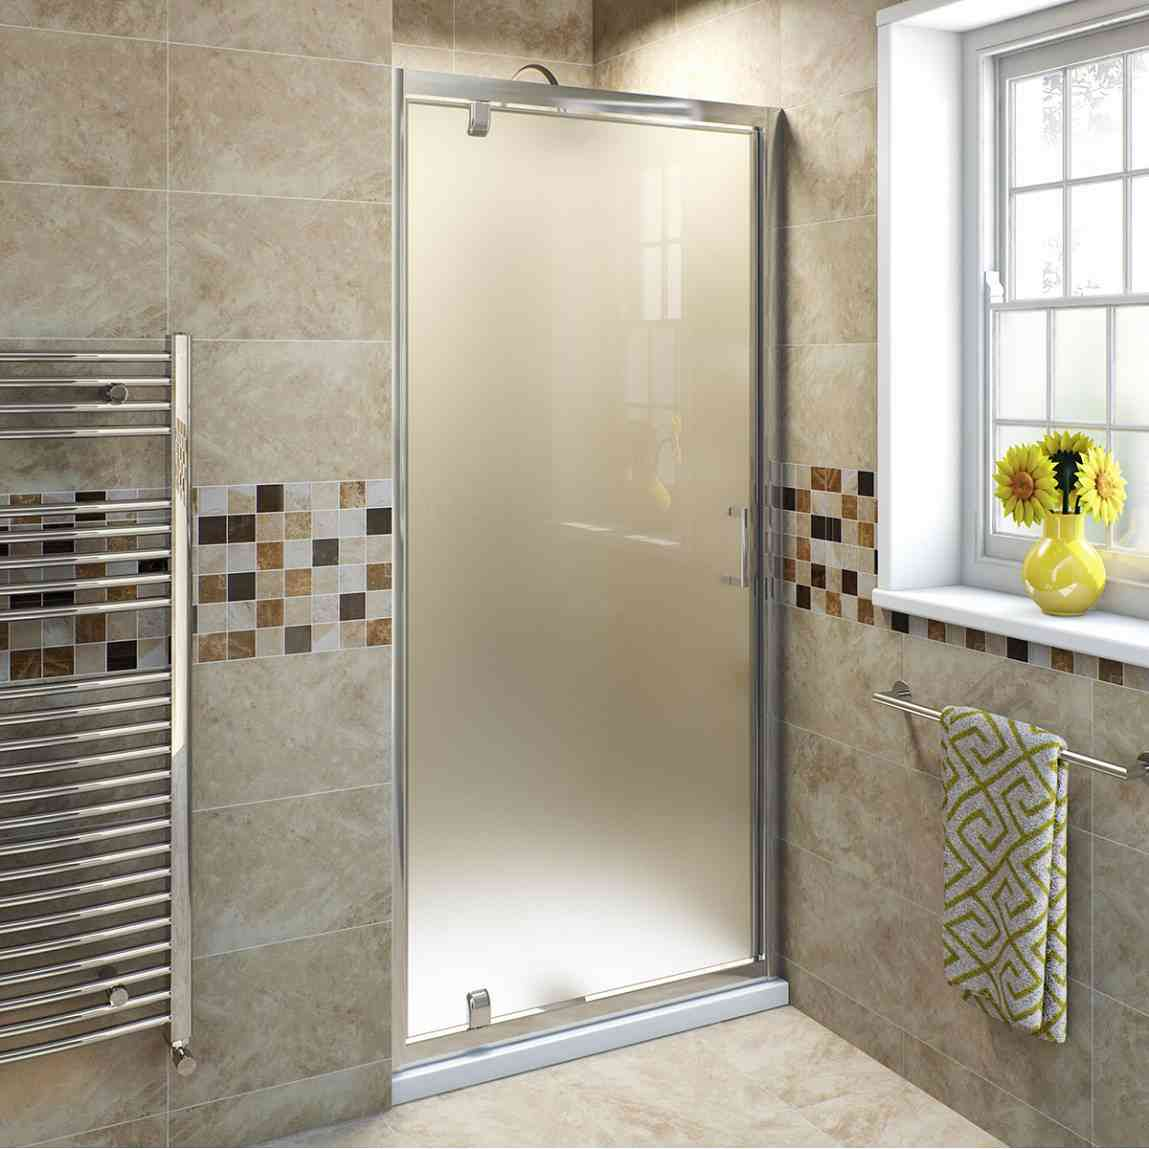 Frosted glass door bathroom - Frosted Sliding Glass Door For Bathroom Home And Garden Ideas